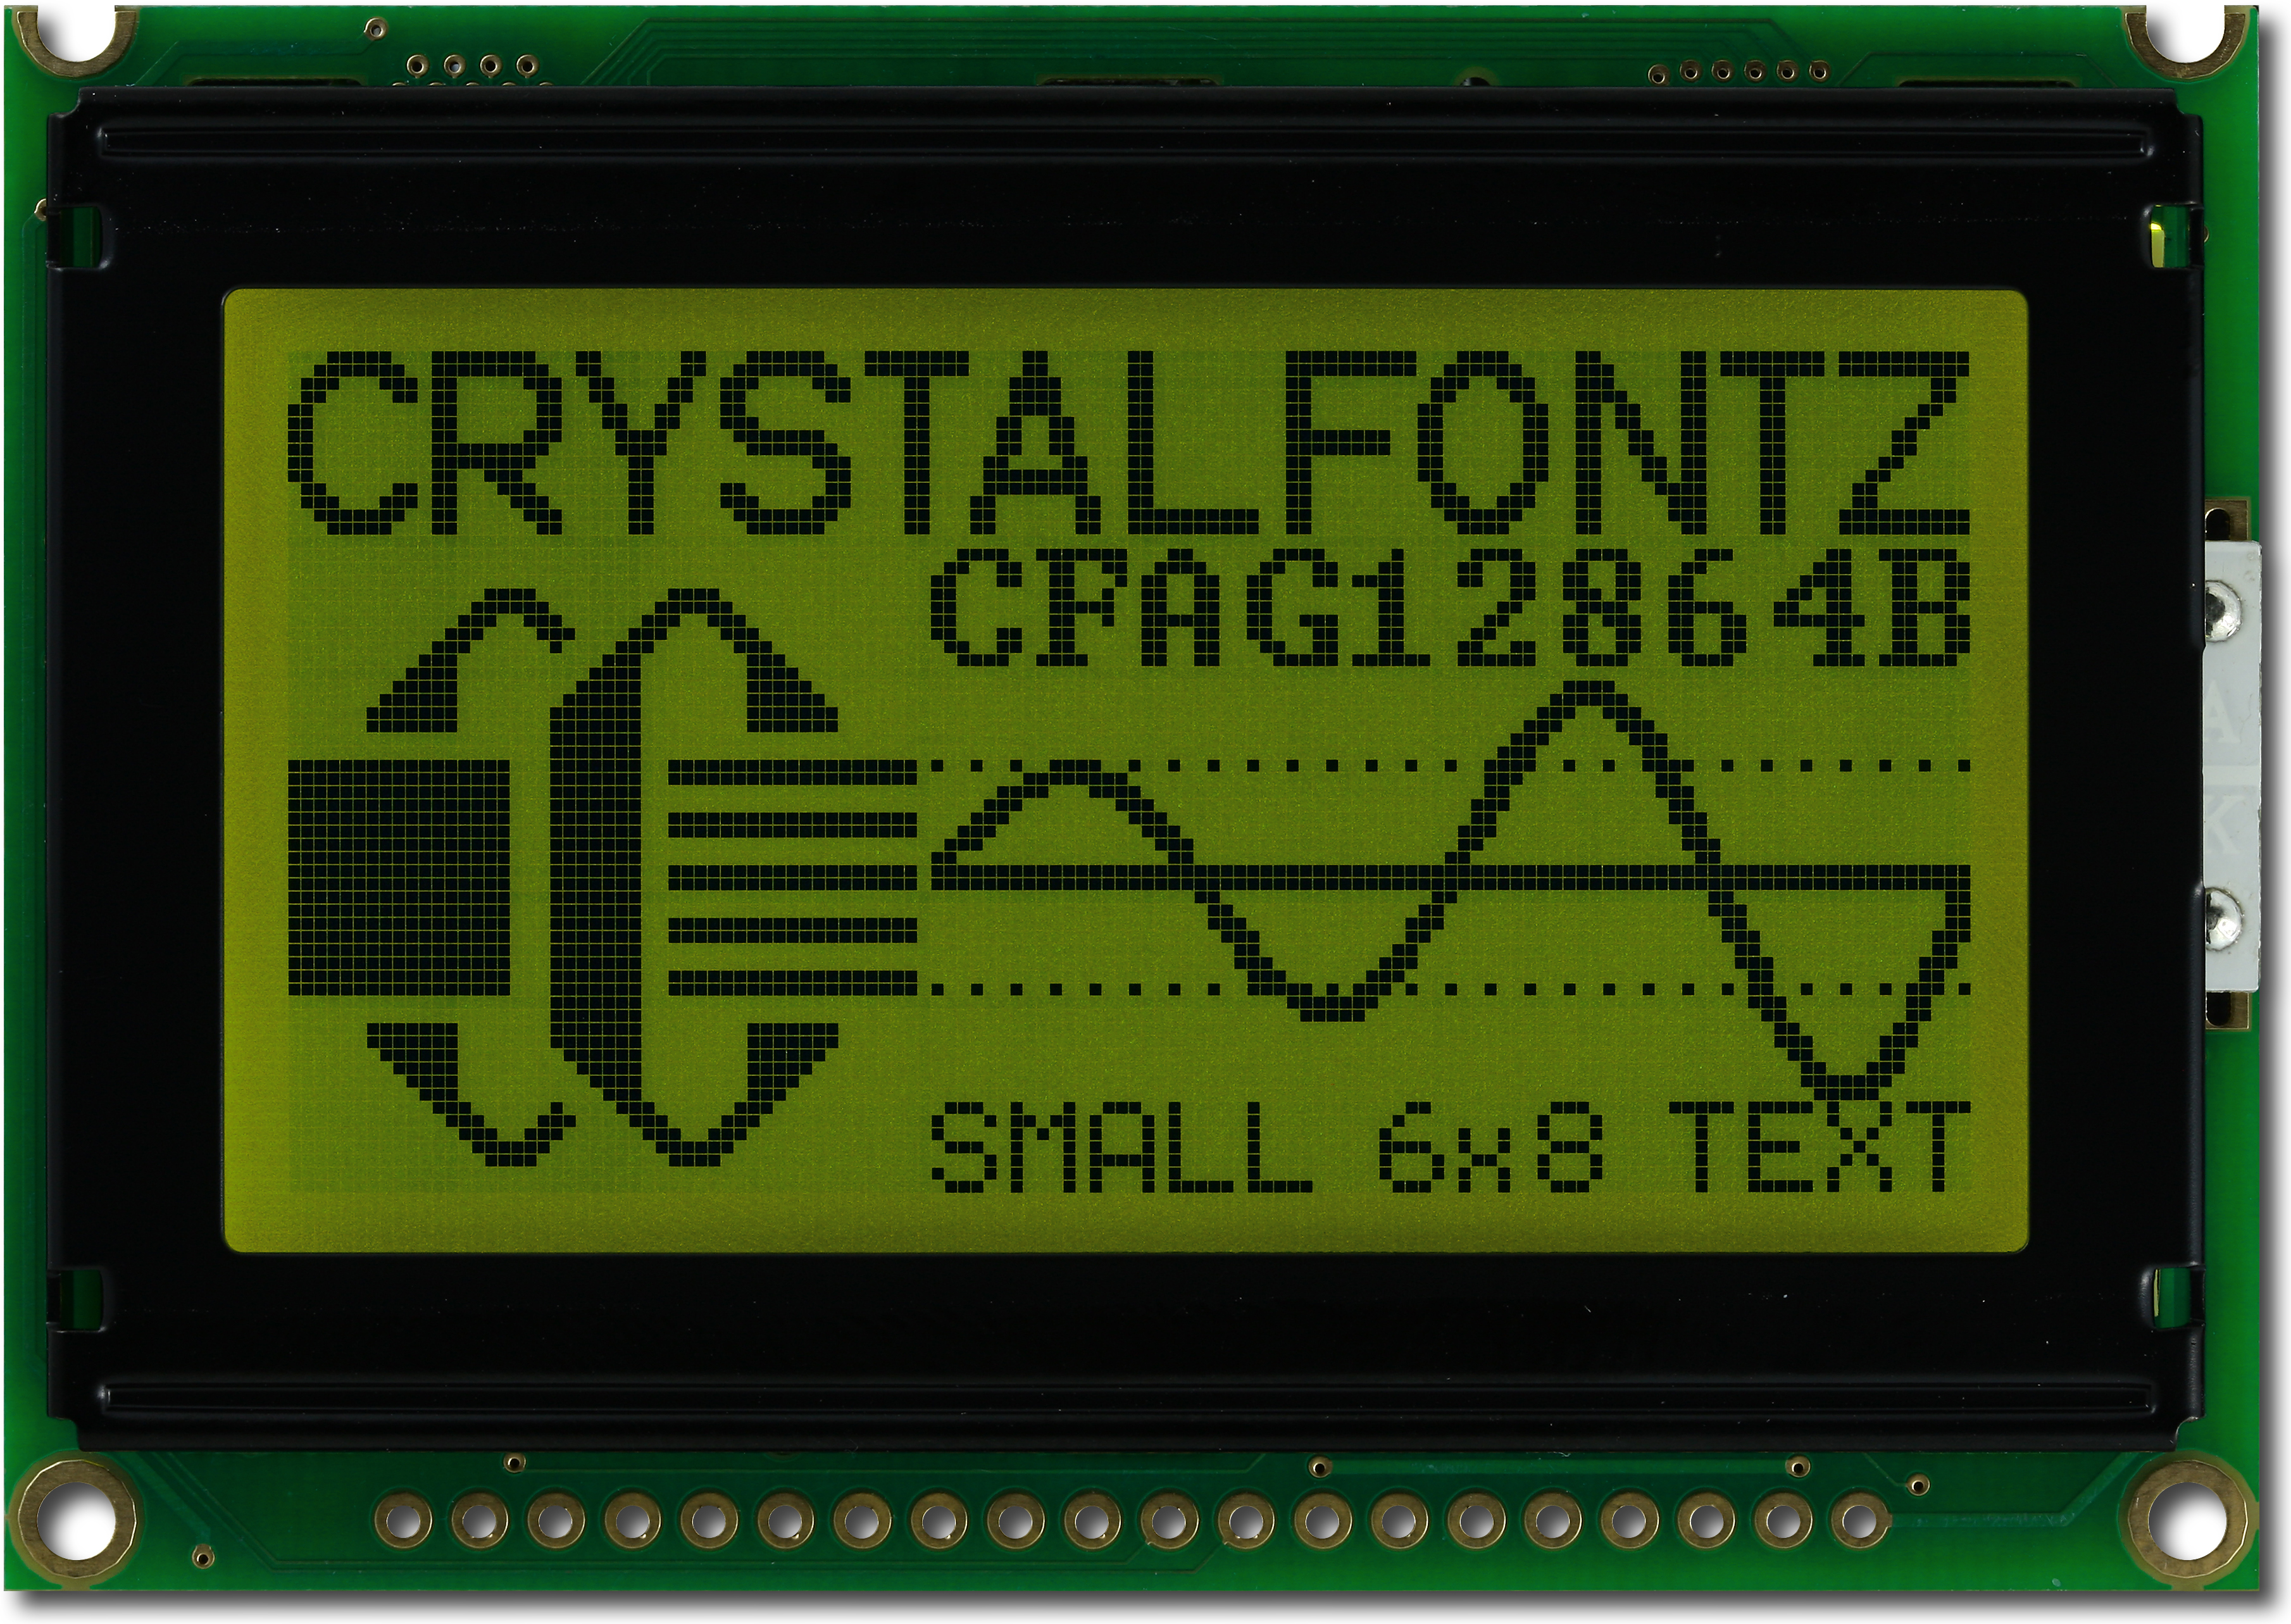 128x64 Transflective Graphical LCD